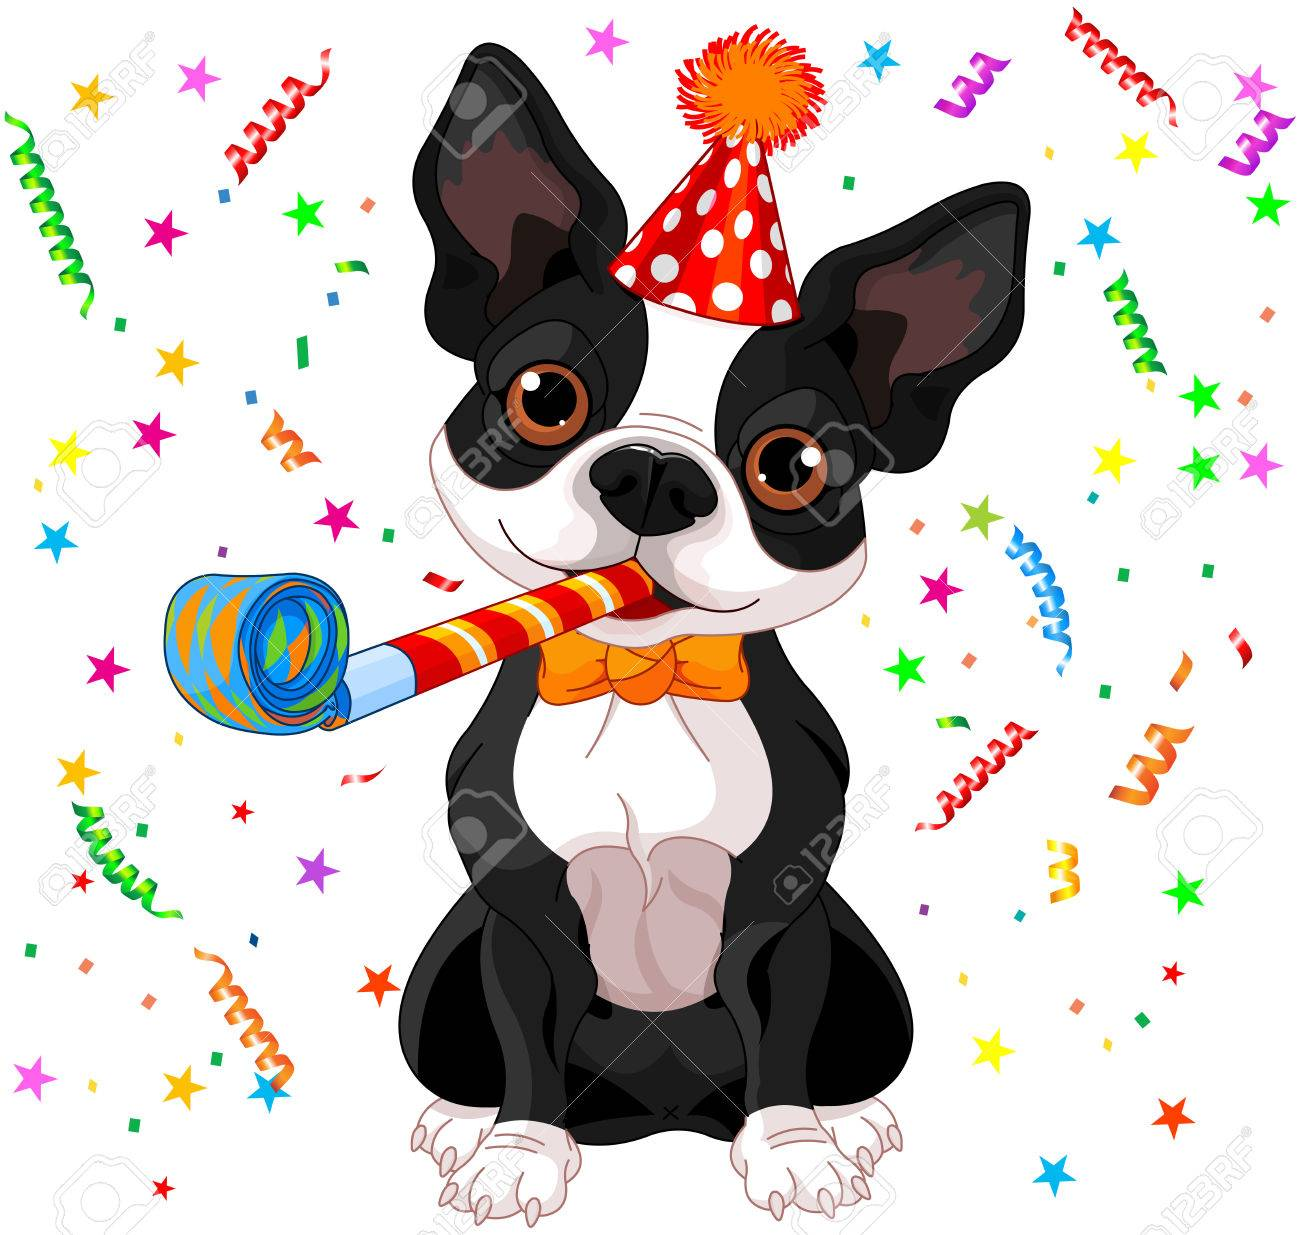 Passer au harnais? - Page 4 35588778-illustration-of-cute-boston-terrier-celebrating